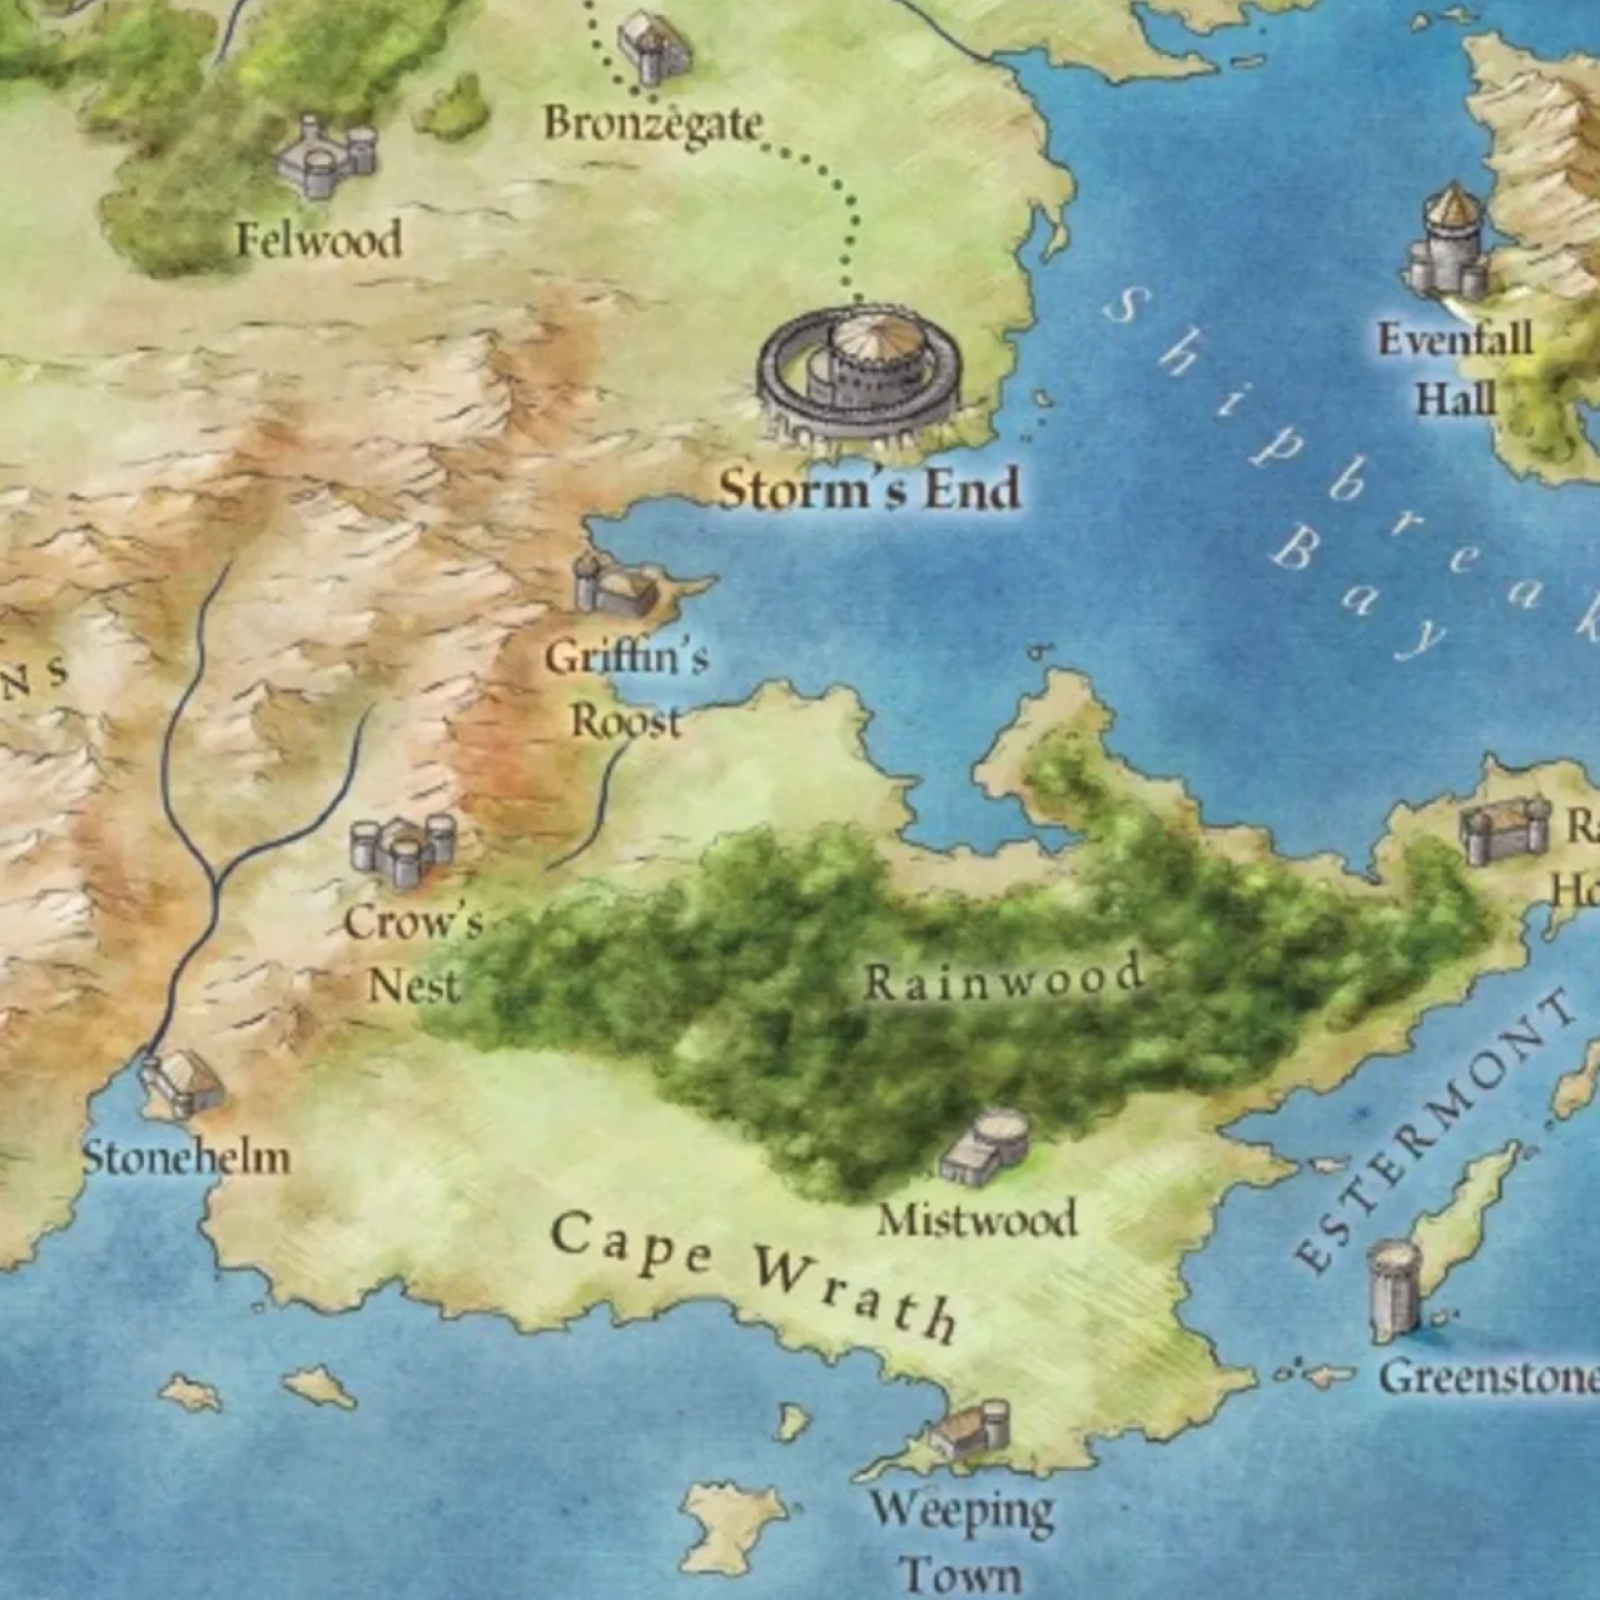 What is the Name of the World in 'Game of Thrones'? The ... Game Of Thrones Map The World on minecraft world map, my little pony friendship is magic world map, the last of us world map, rome world map, guild wars 2 world map, the amazing race world map, harry potter world map, world of warcraft interactive map, forgotten realms map, hyperdimension neptunia world map, the legend of korra world map, gta world map, lotr world map, skyrim world map, the elder scrolls online world map, thousand arms world map, steven universe world map, witcher 2 world map, port royale 3 world map,